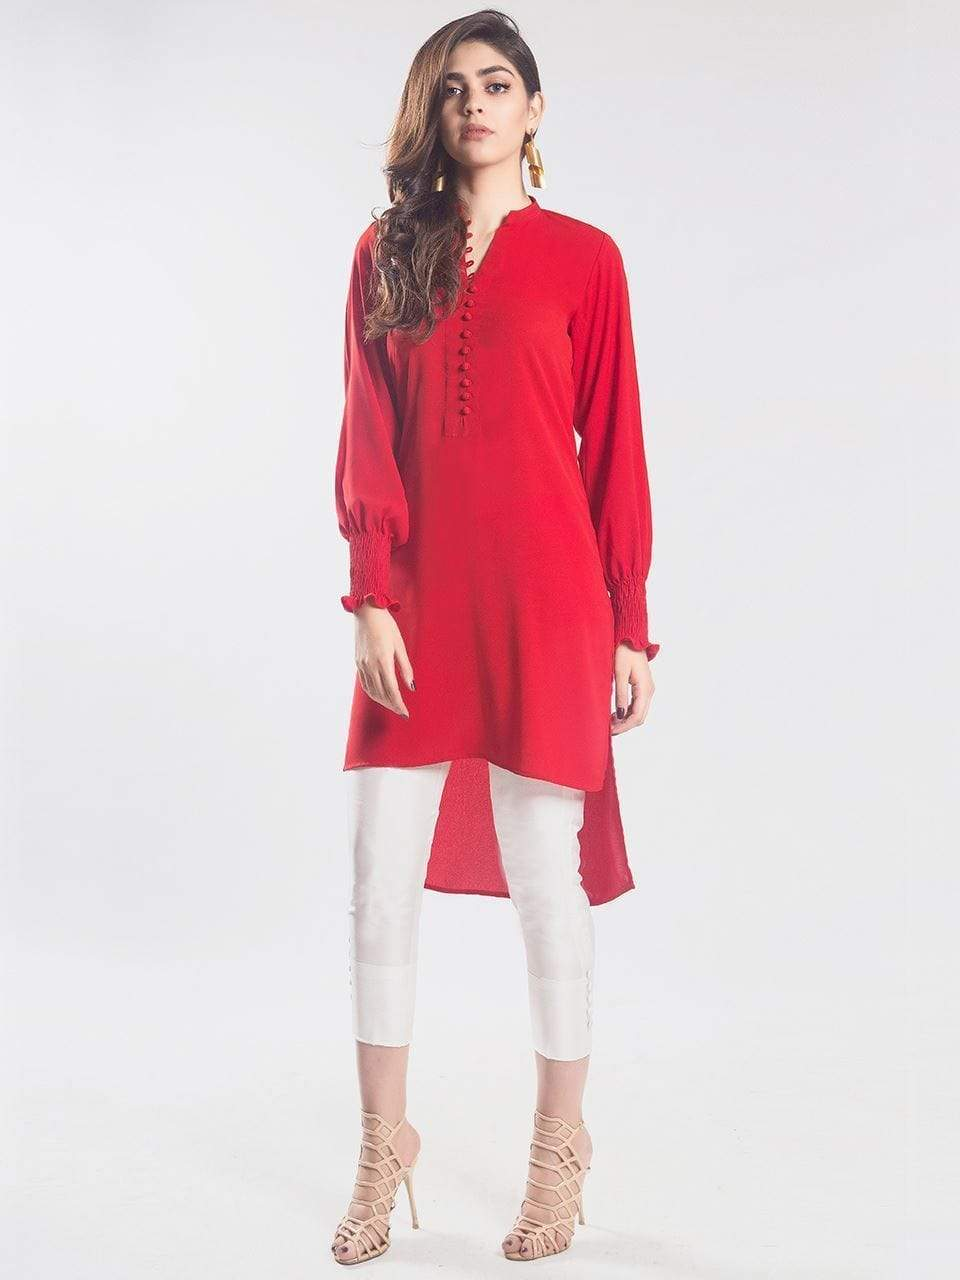 Natasha Kamal - Fumo Solid Colour Tunic Featuring Hand Stitched Smoking Sleeves (One Piece)